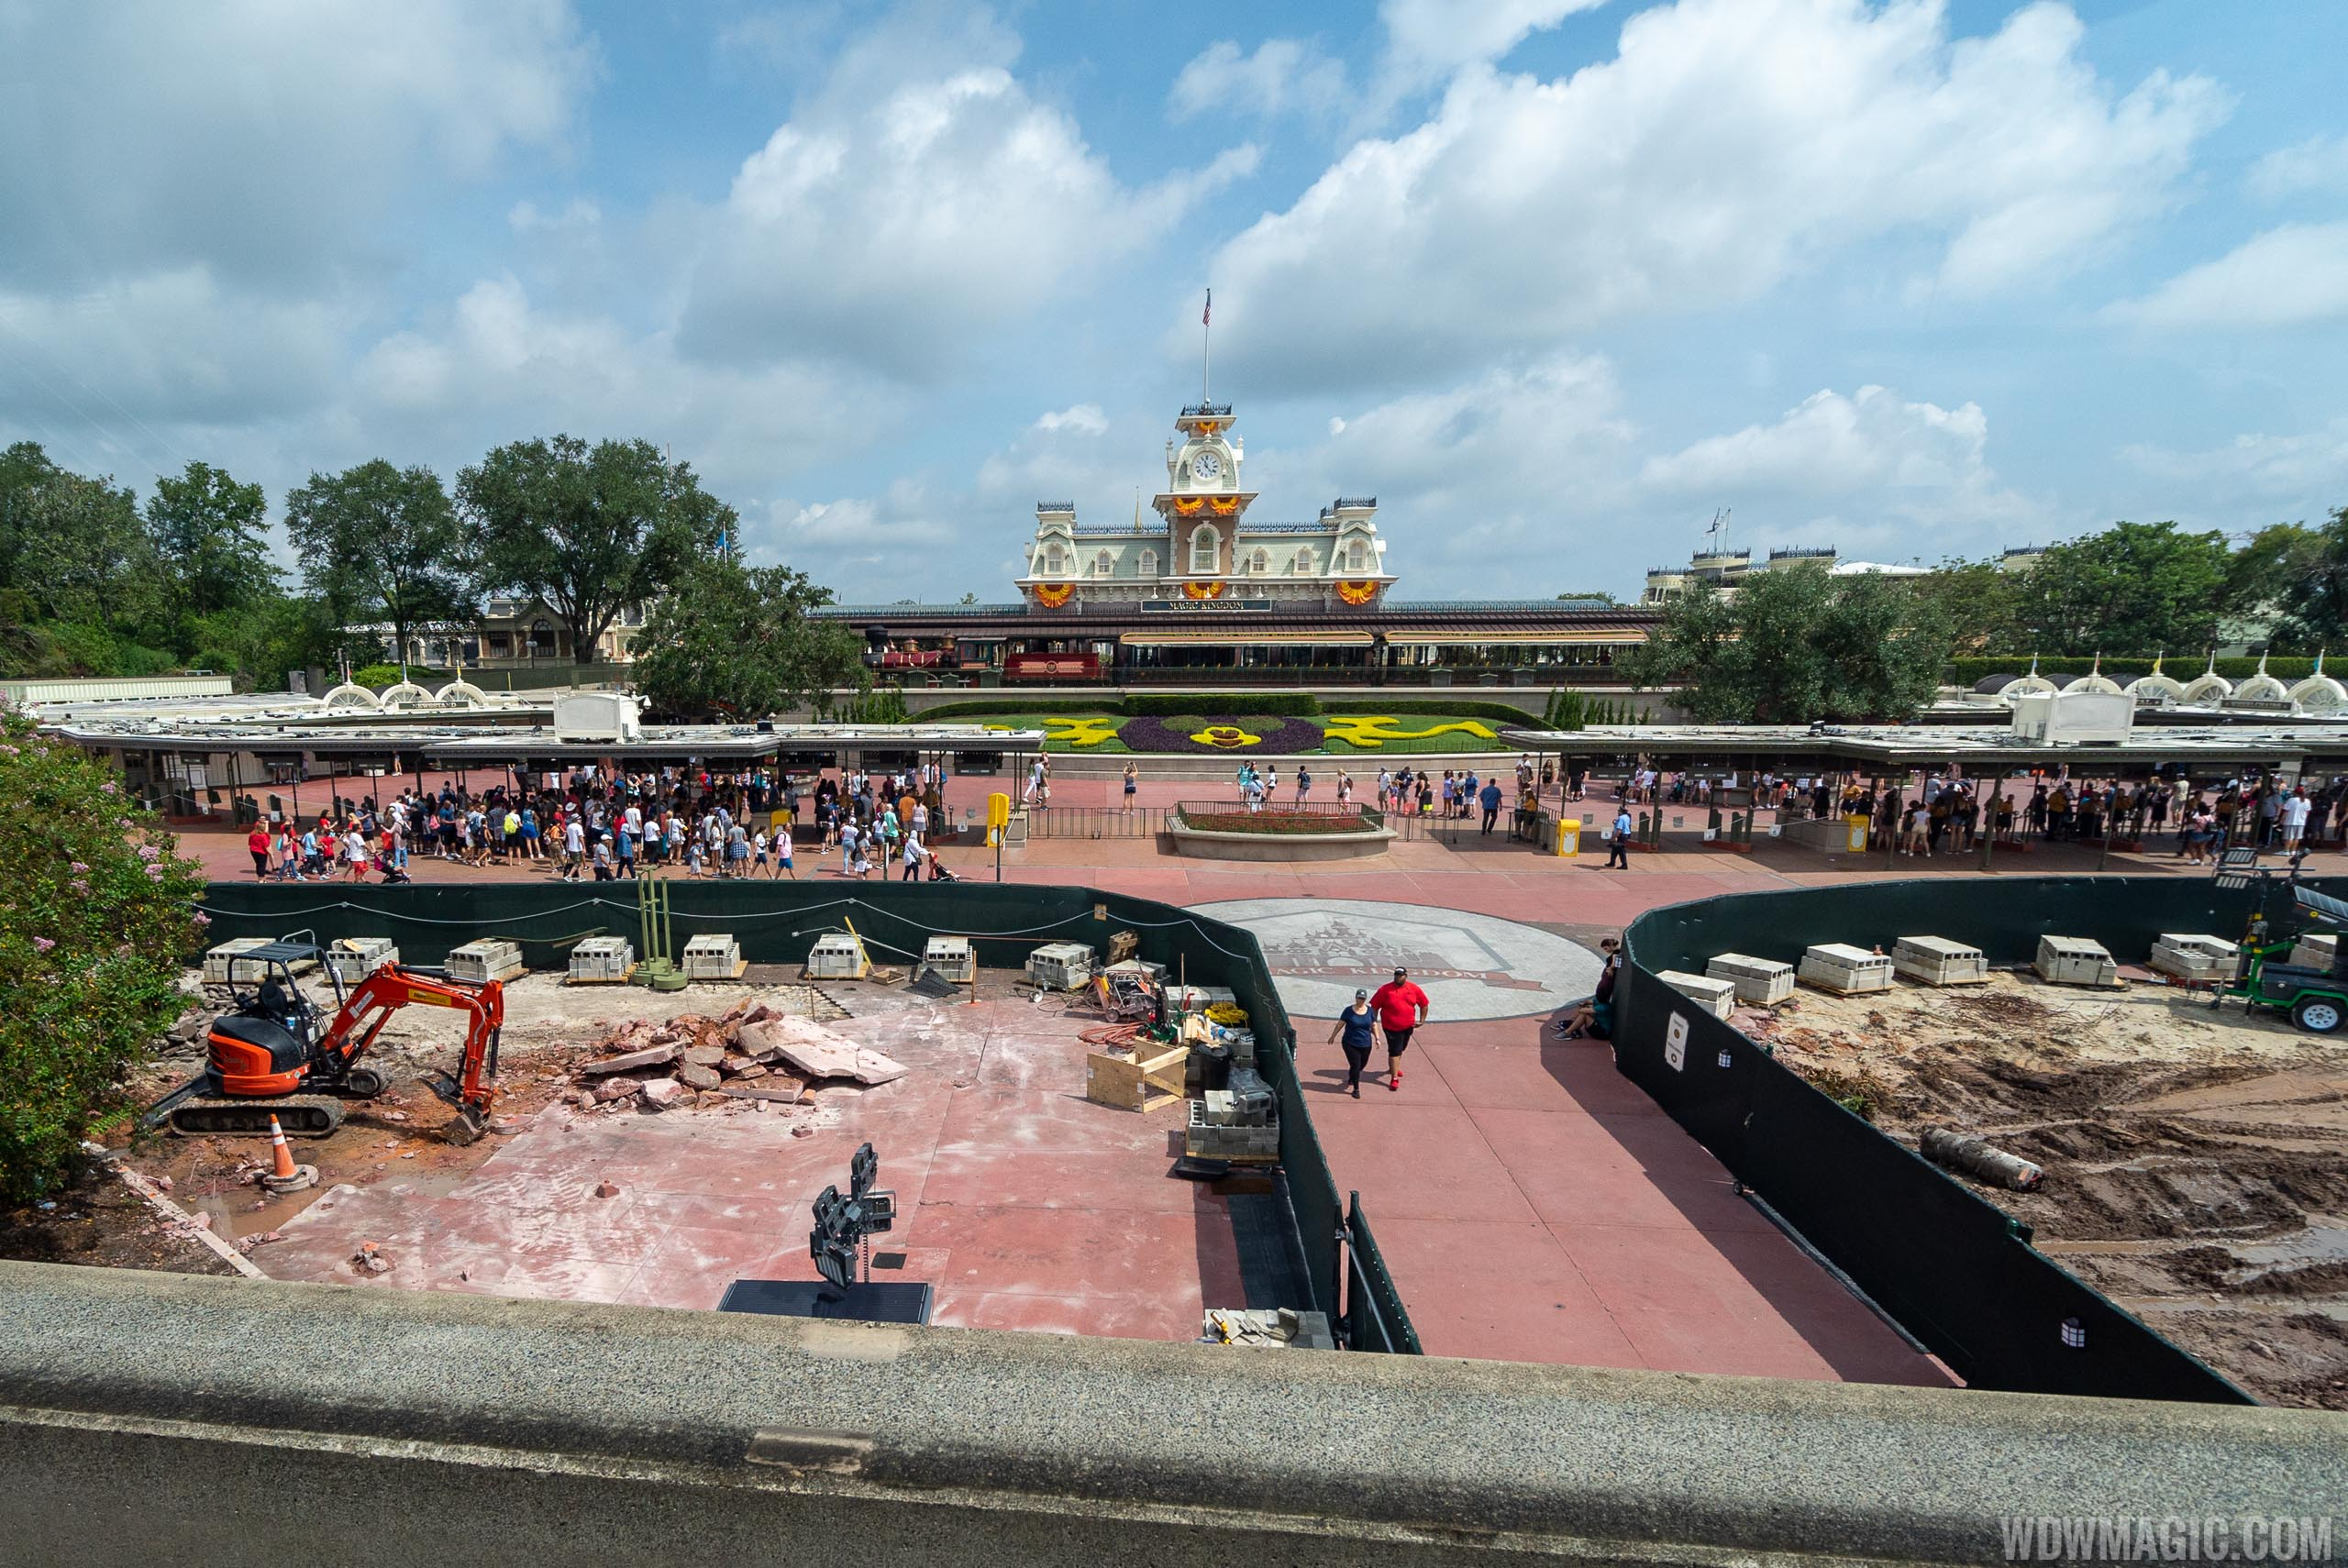 Magic Kingdom main entrance area construction - August 2019